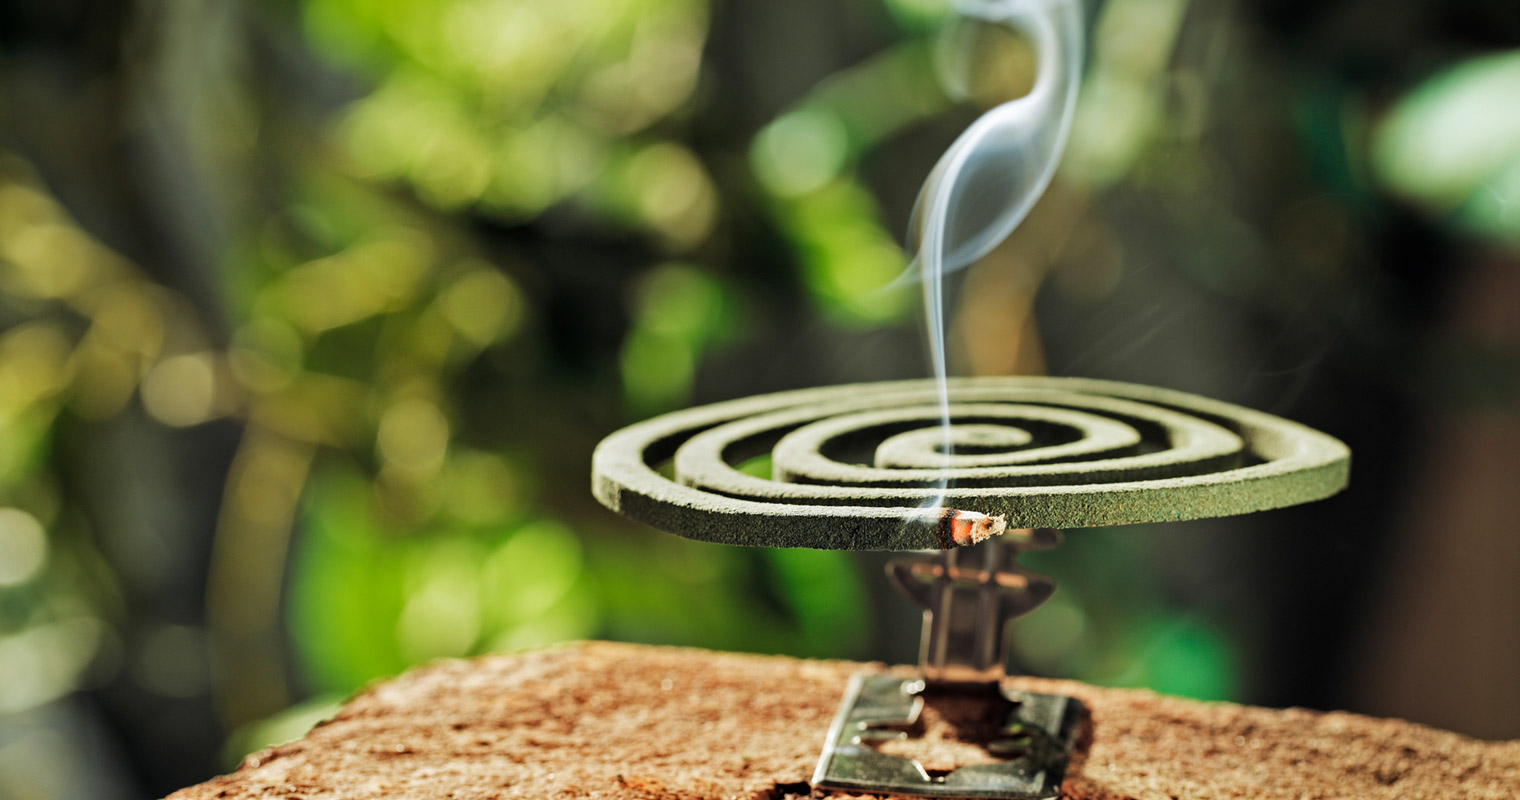 Mosquito coil as insect repellent